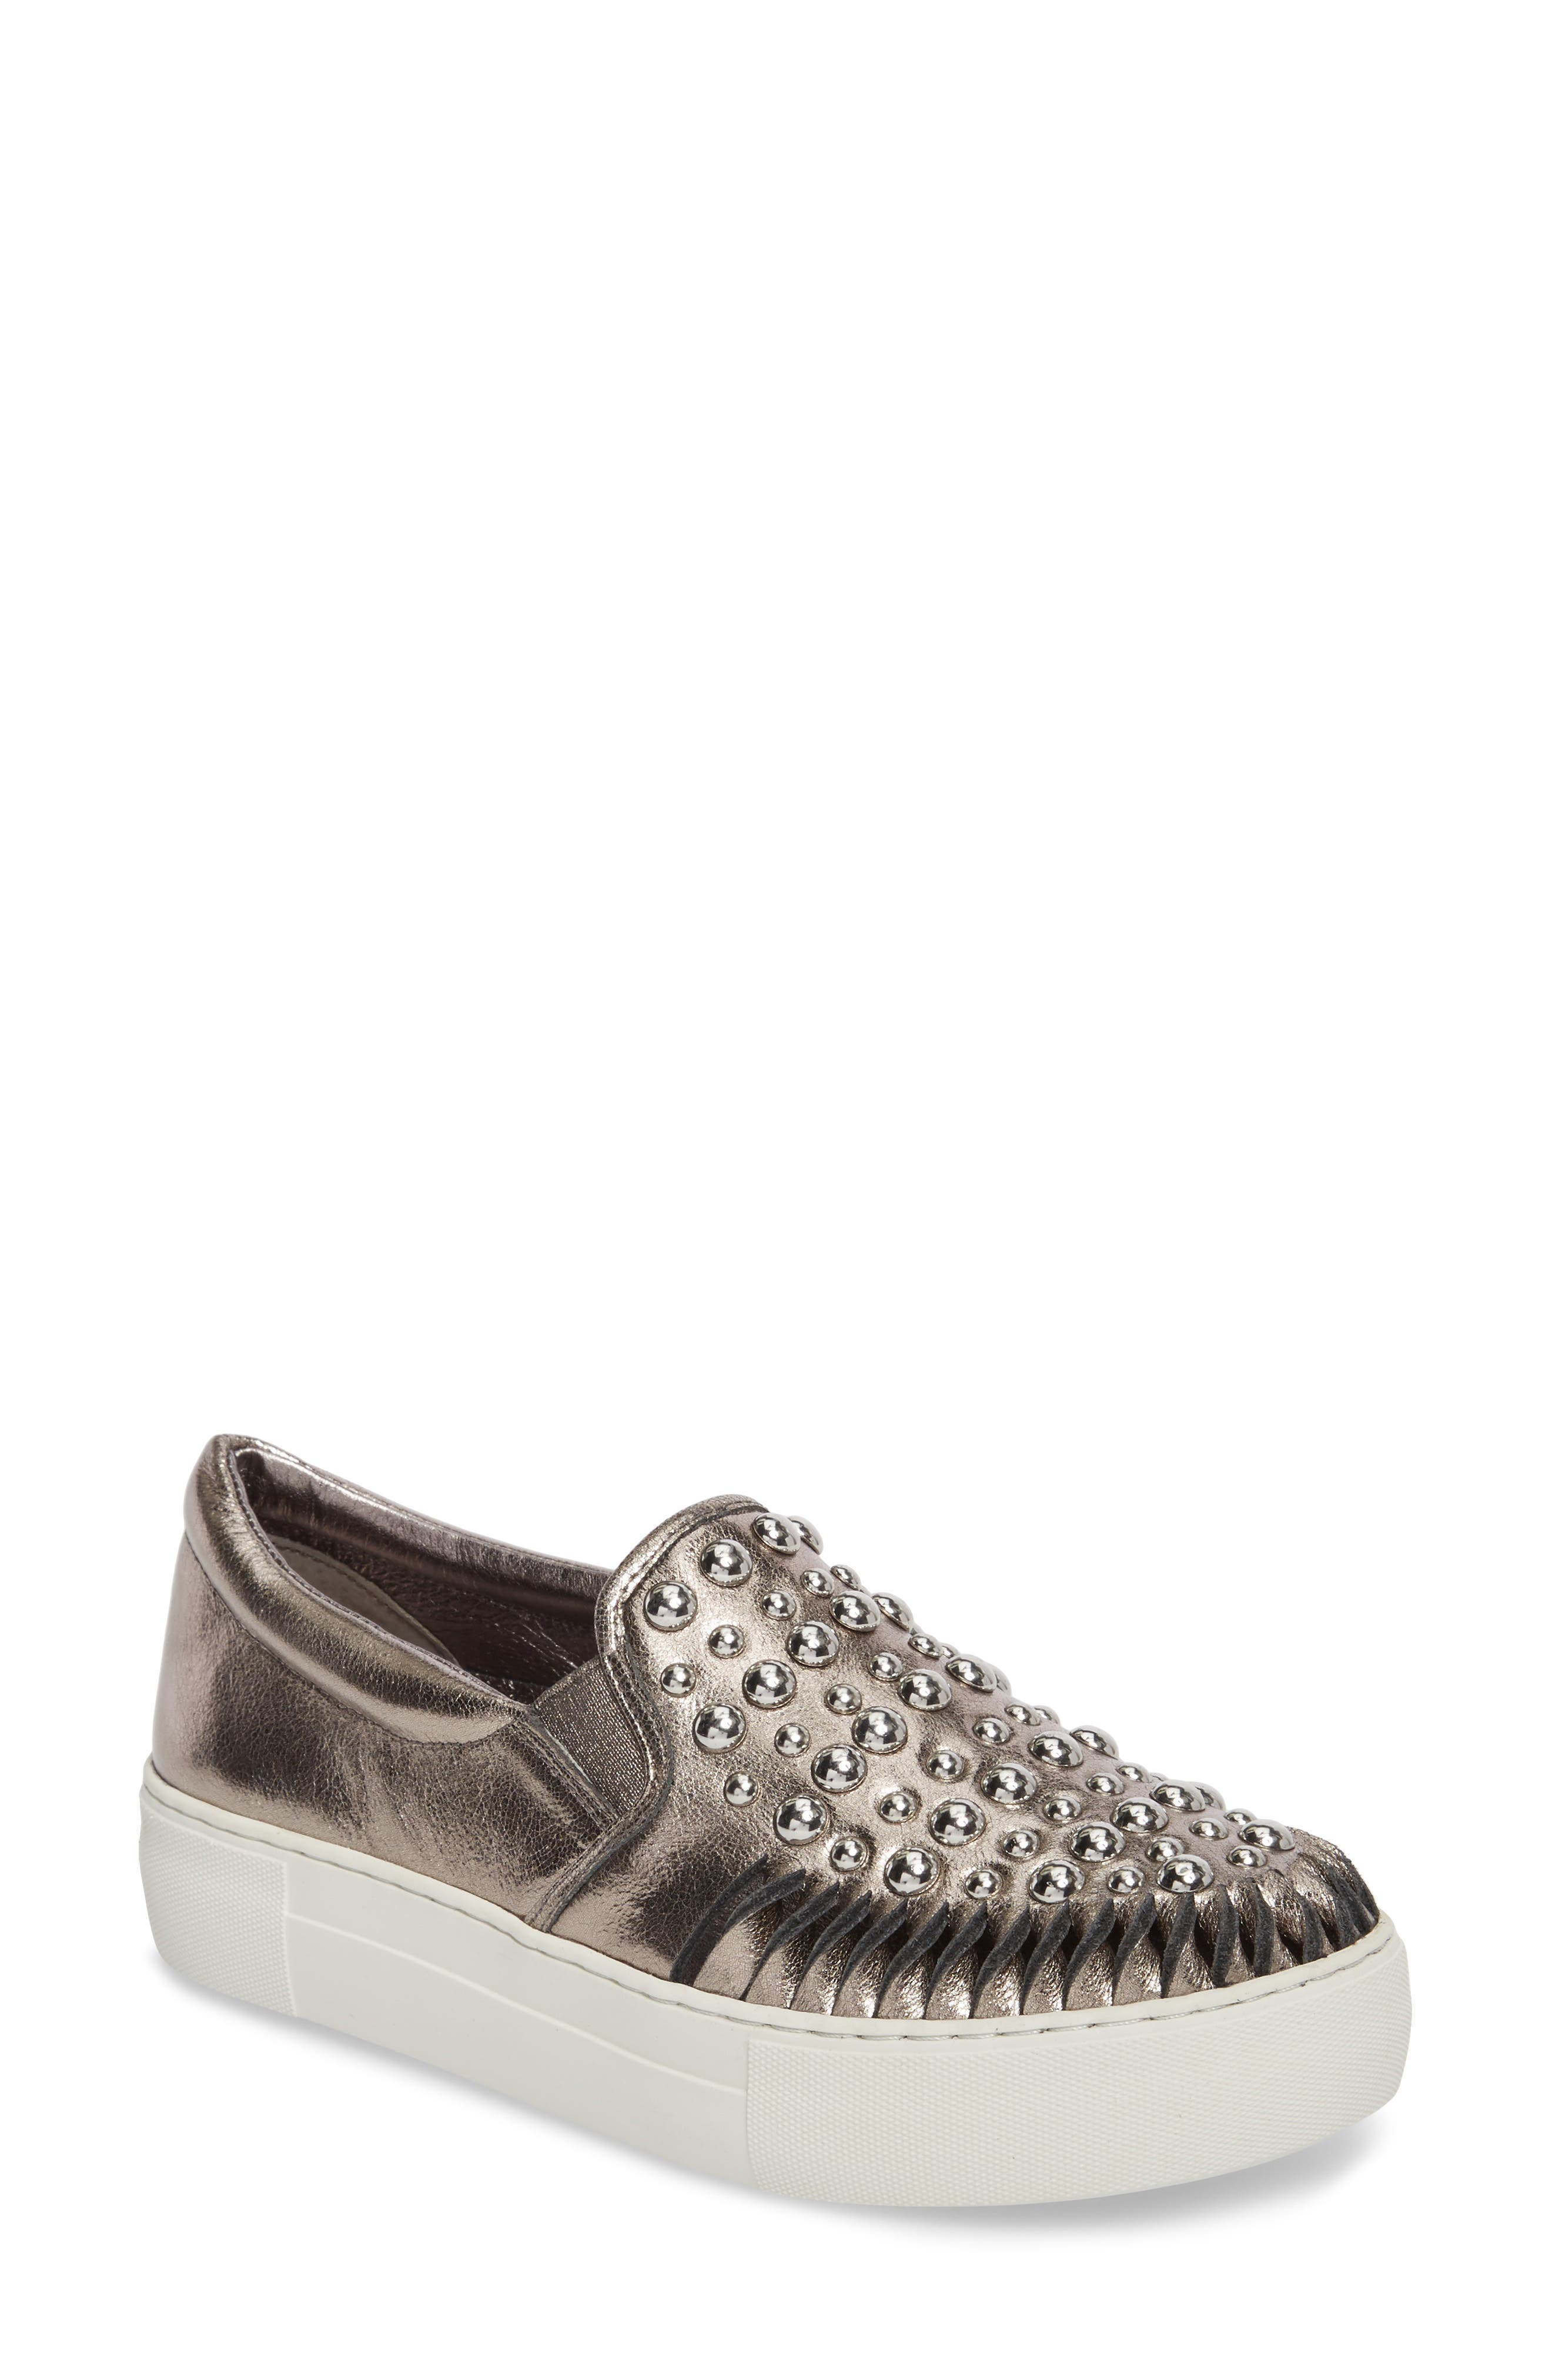 AZT Studded Slip-On Sneaker,                             Main thumbnail 1, color,                             Pewter Leather